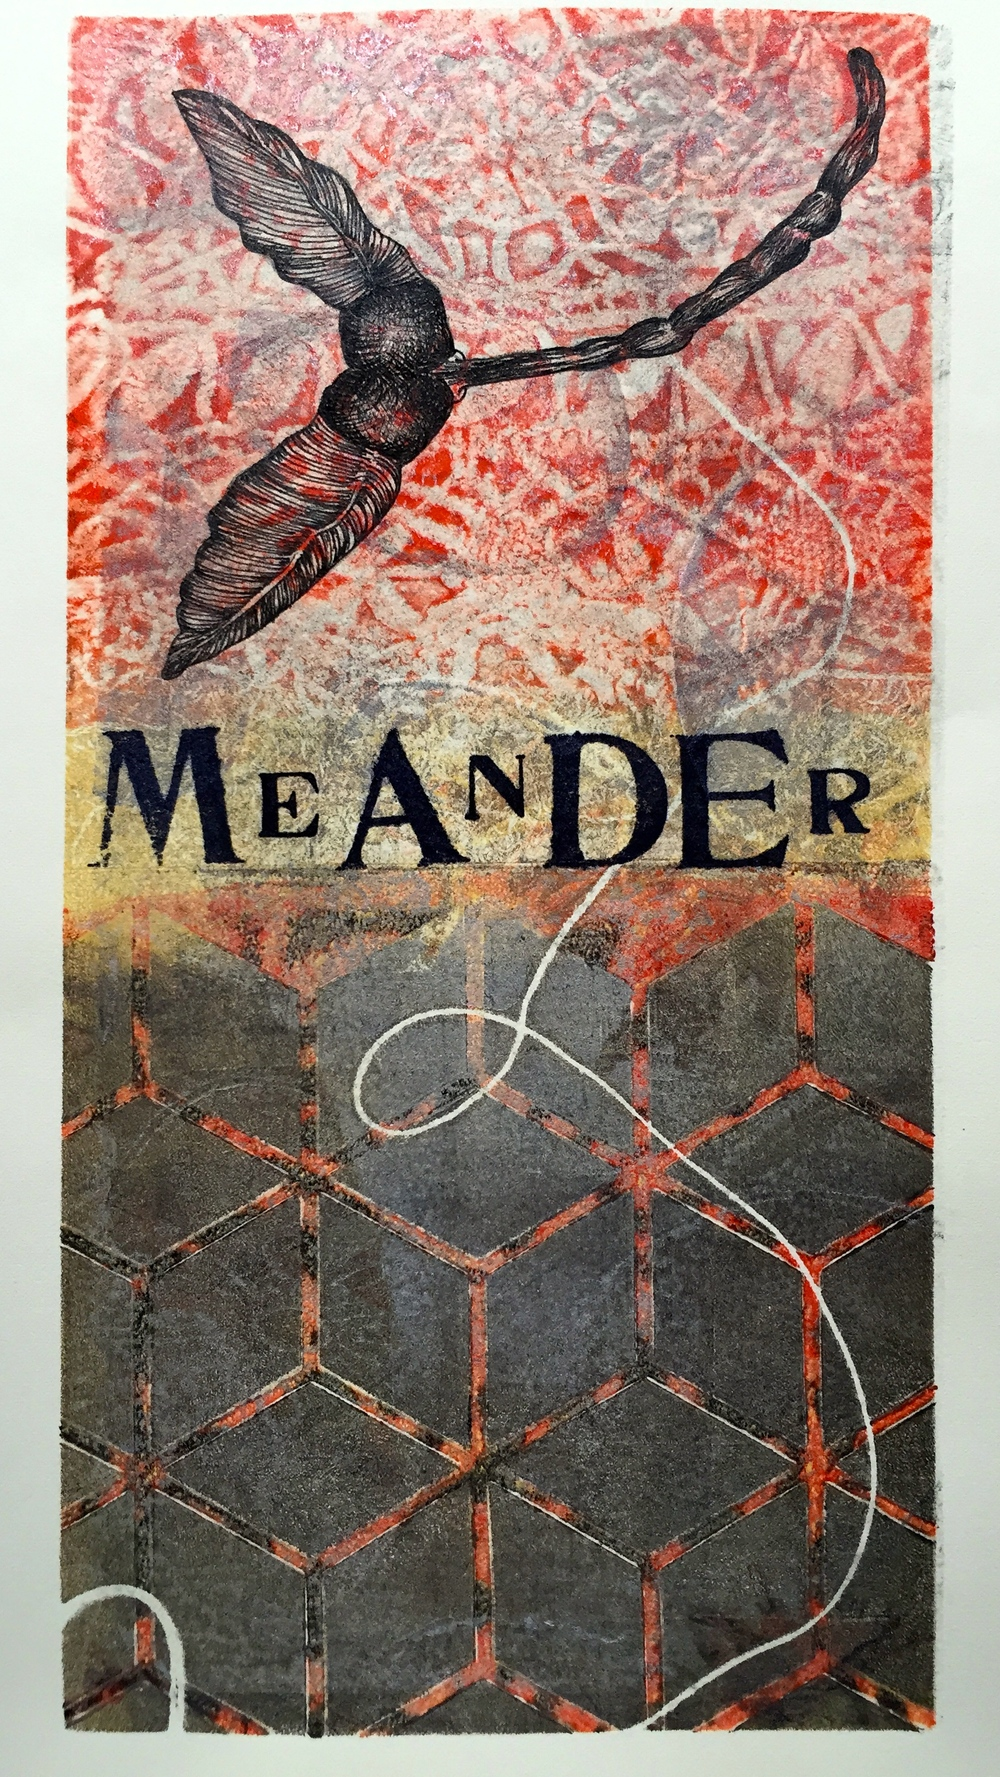 Meander   6 x 12 inches  mixed media  image: Susan Webster  stamped text:Stuart Kestenbaum  2015